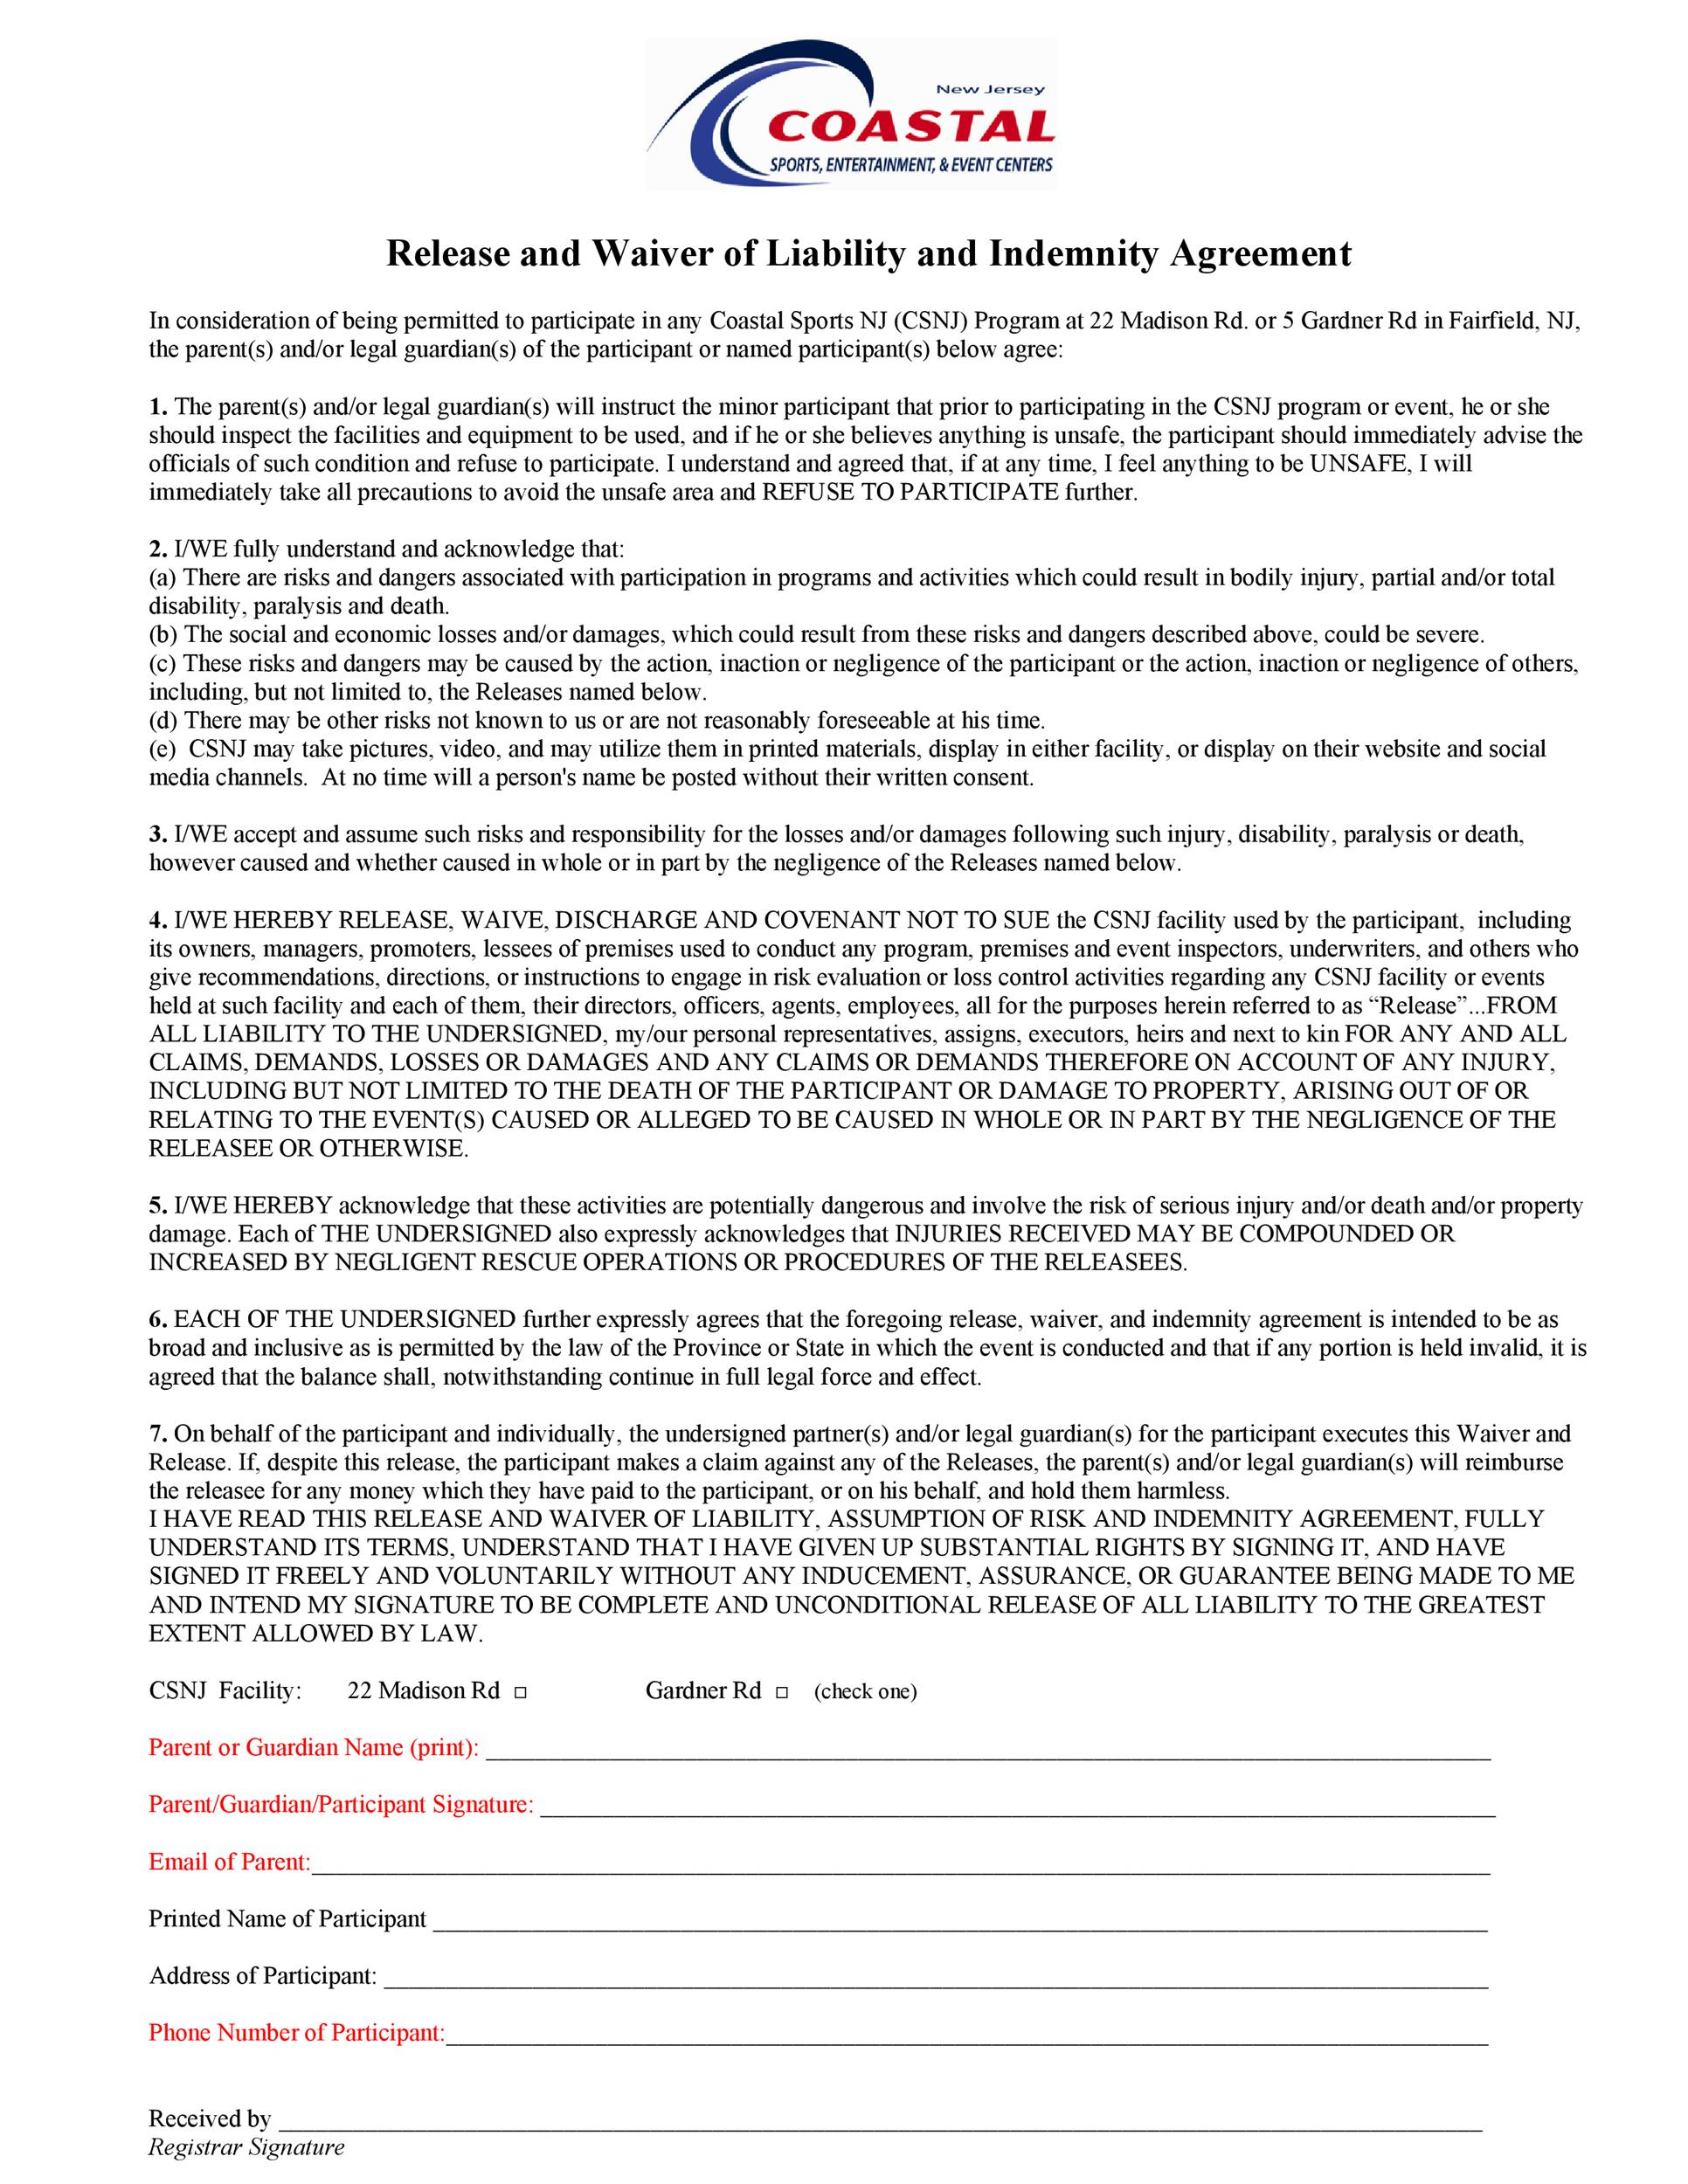 Free release of liability form 22